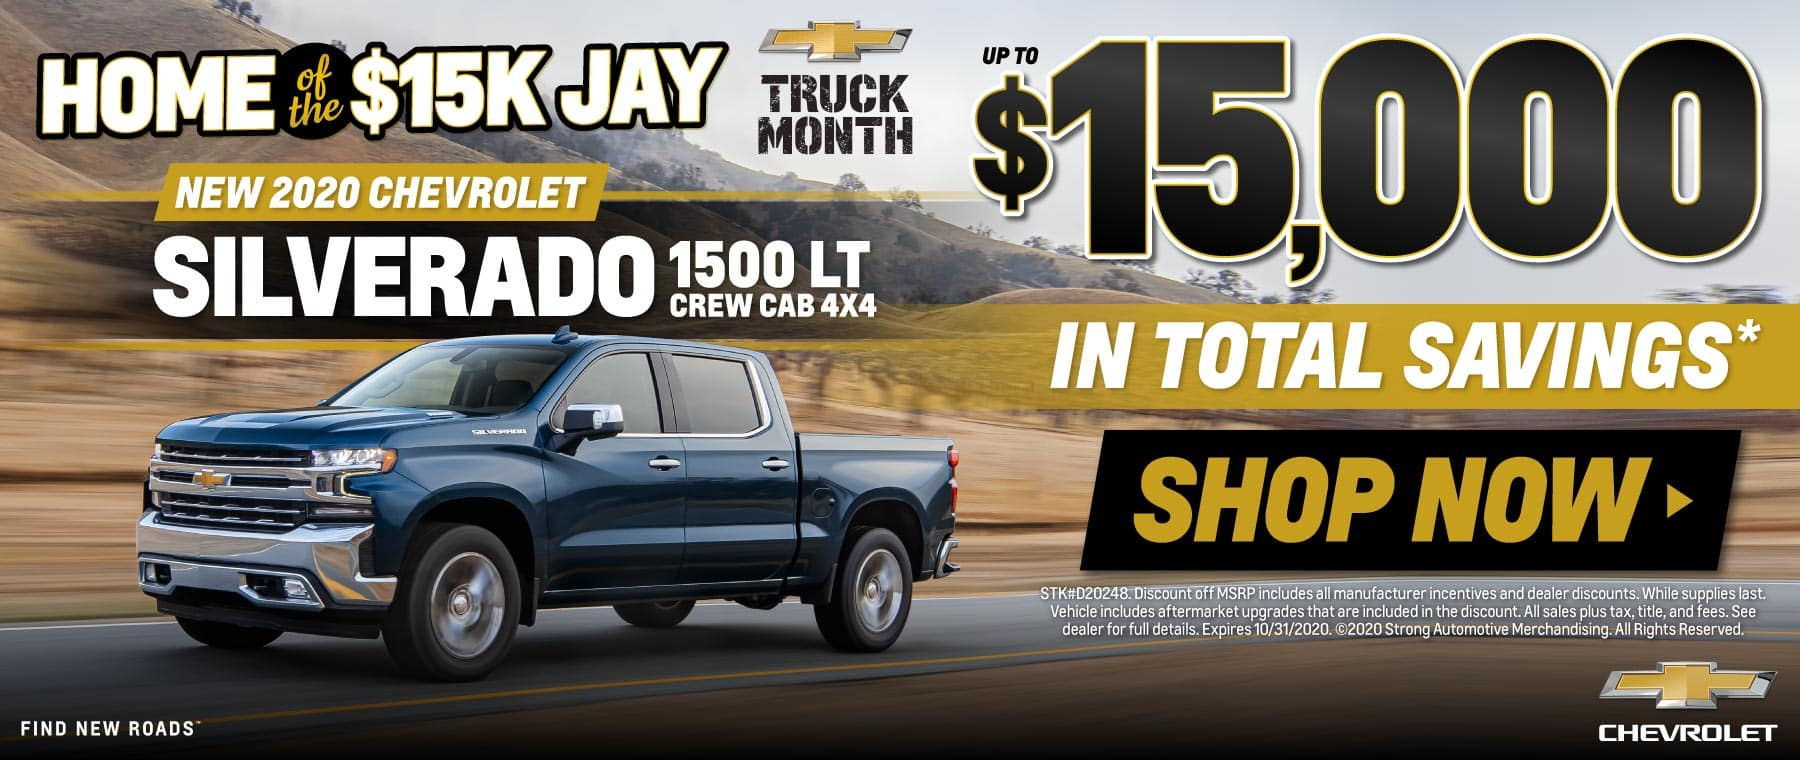 New 2020 Chevrolet Silverado up to $15,000 in Total Savings - SHOP NOW